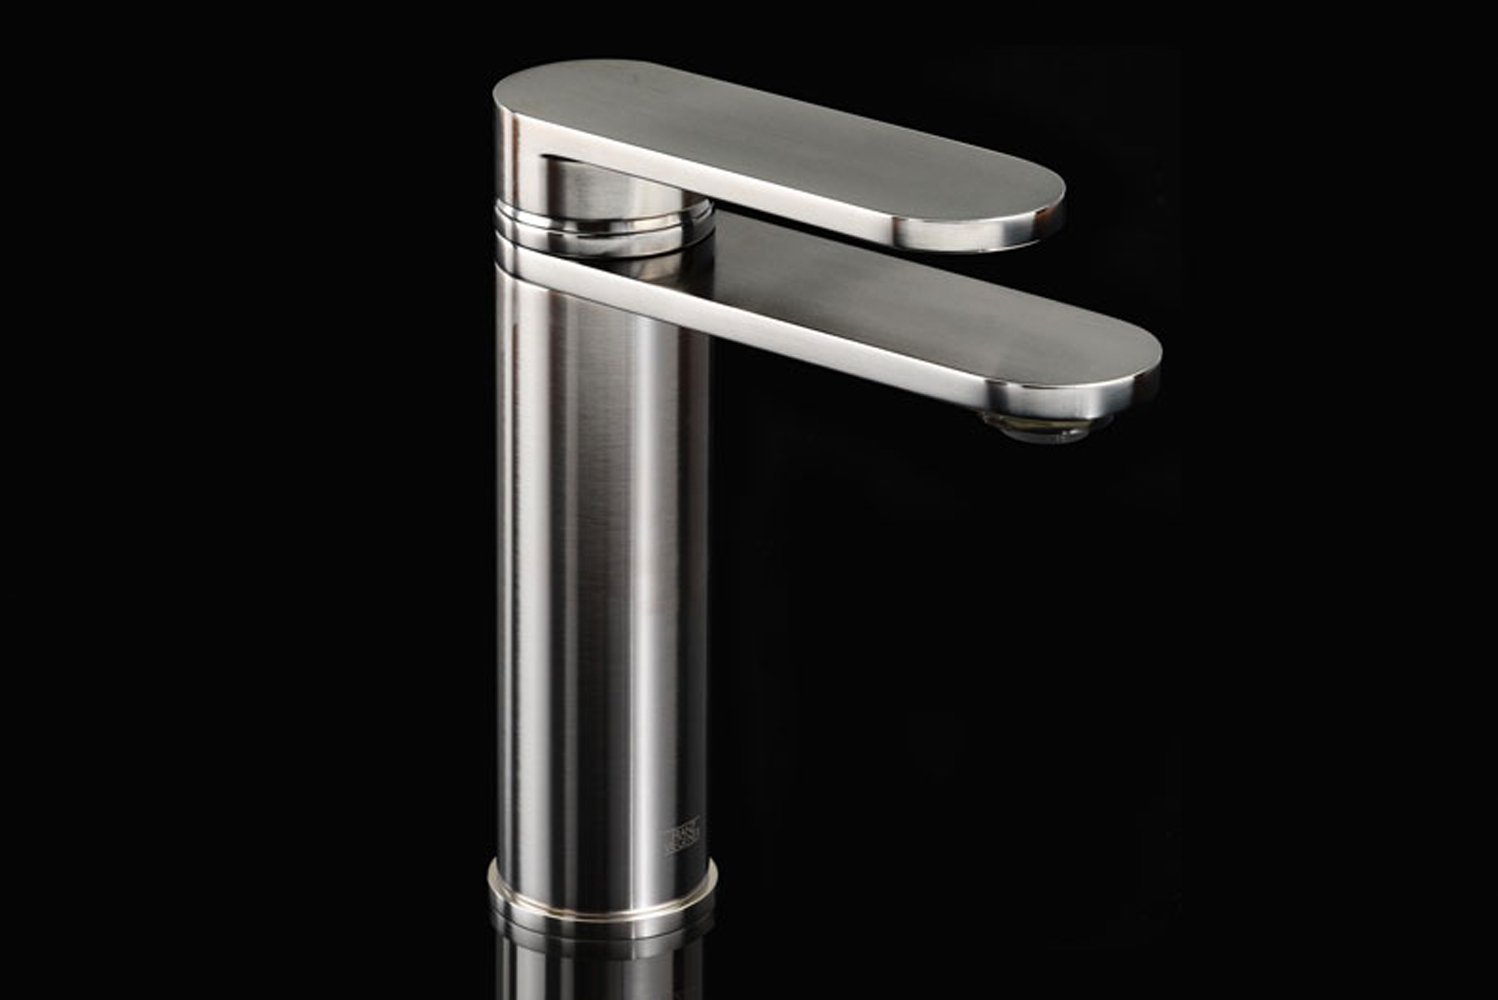 Introducing Seven, the newest addition to Franz Viegener's collection of sculptural bath fittings.